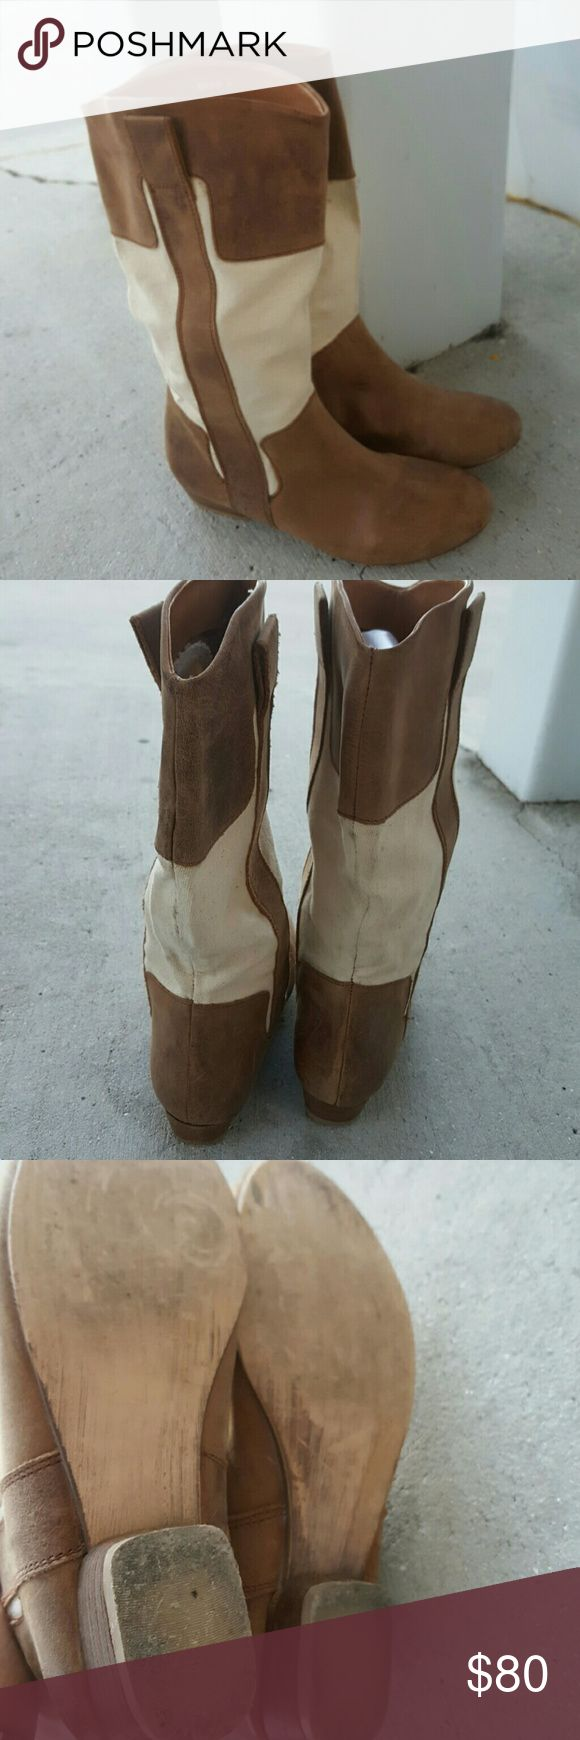 """DEENA &  OZZY BOOTS Canvas and leather boots 1""""heel  Size 6 Pre-loved priced accordingly worn well Deena & Ozzy Shoes Heeled Boots"""